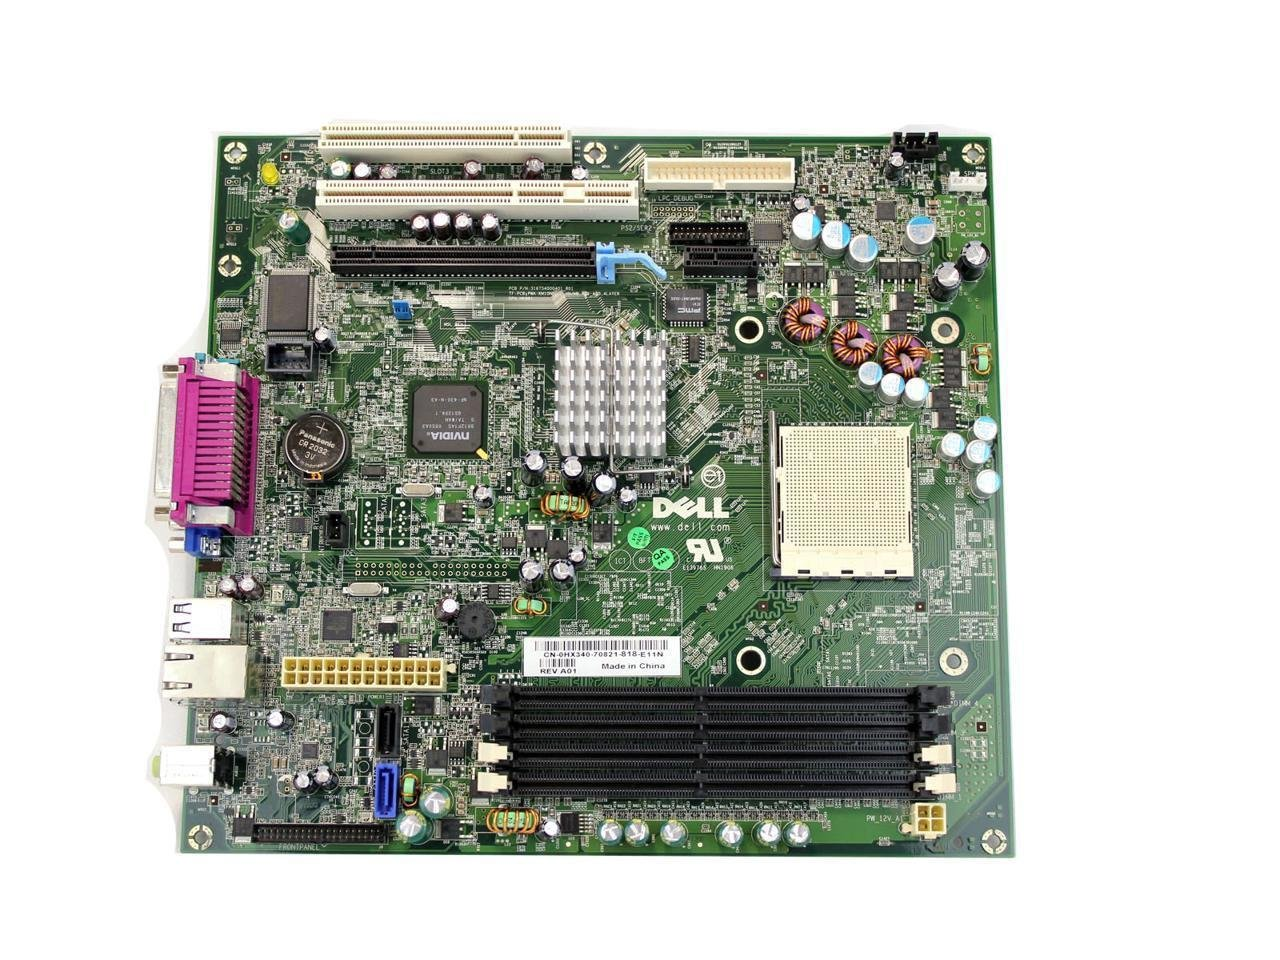 Amazon genuine dell motherboard for dell optiplex 740 desktop amazon genuine dell motherboard for dell optiplex 740 desktop systems nvidia chipset geforce 6150lenforce 430 compatible part numbers hx340 yp696 pooptronica